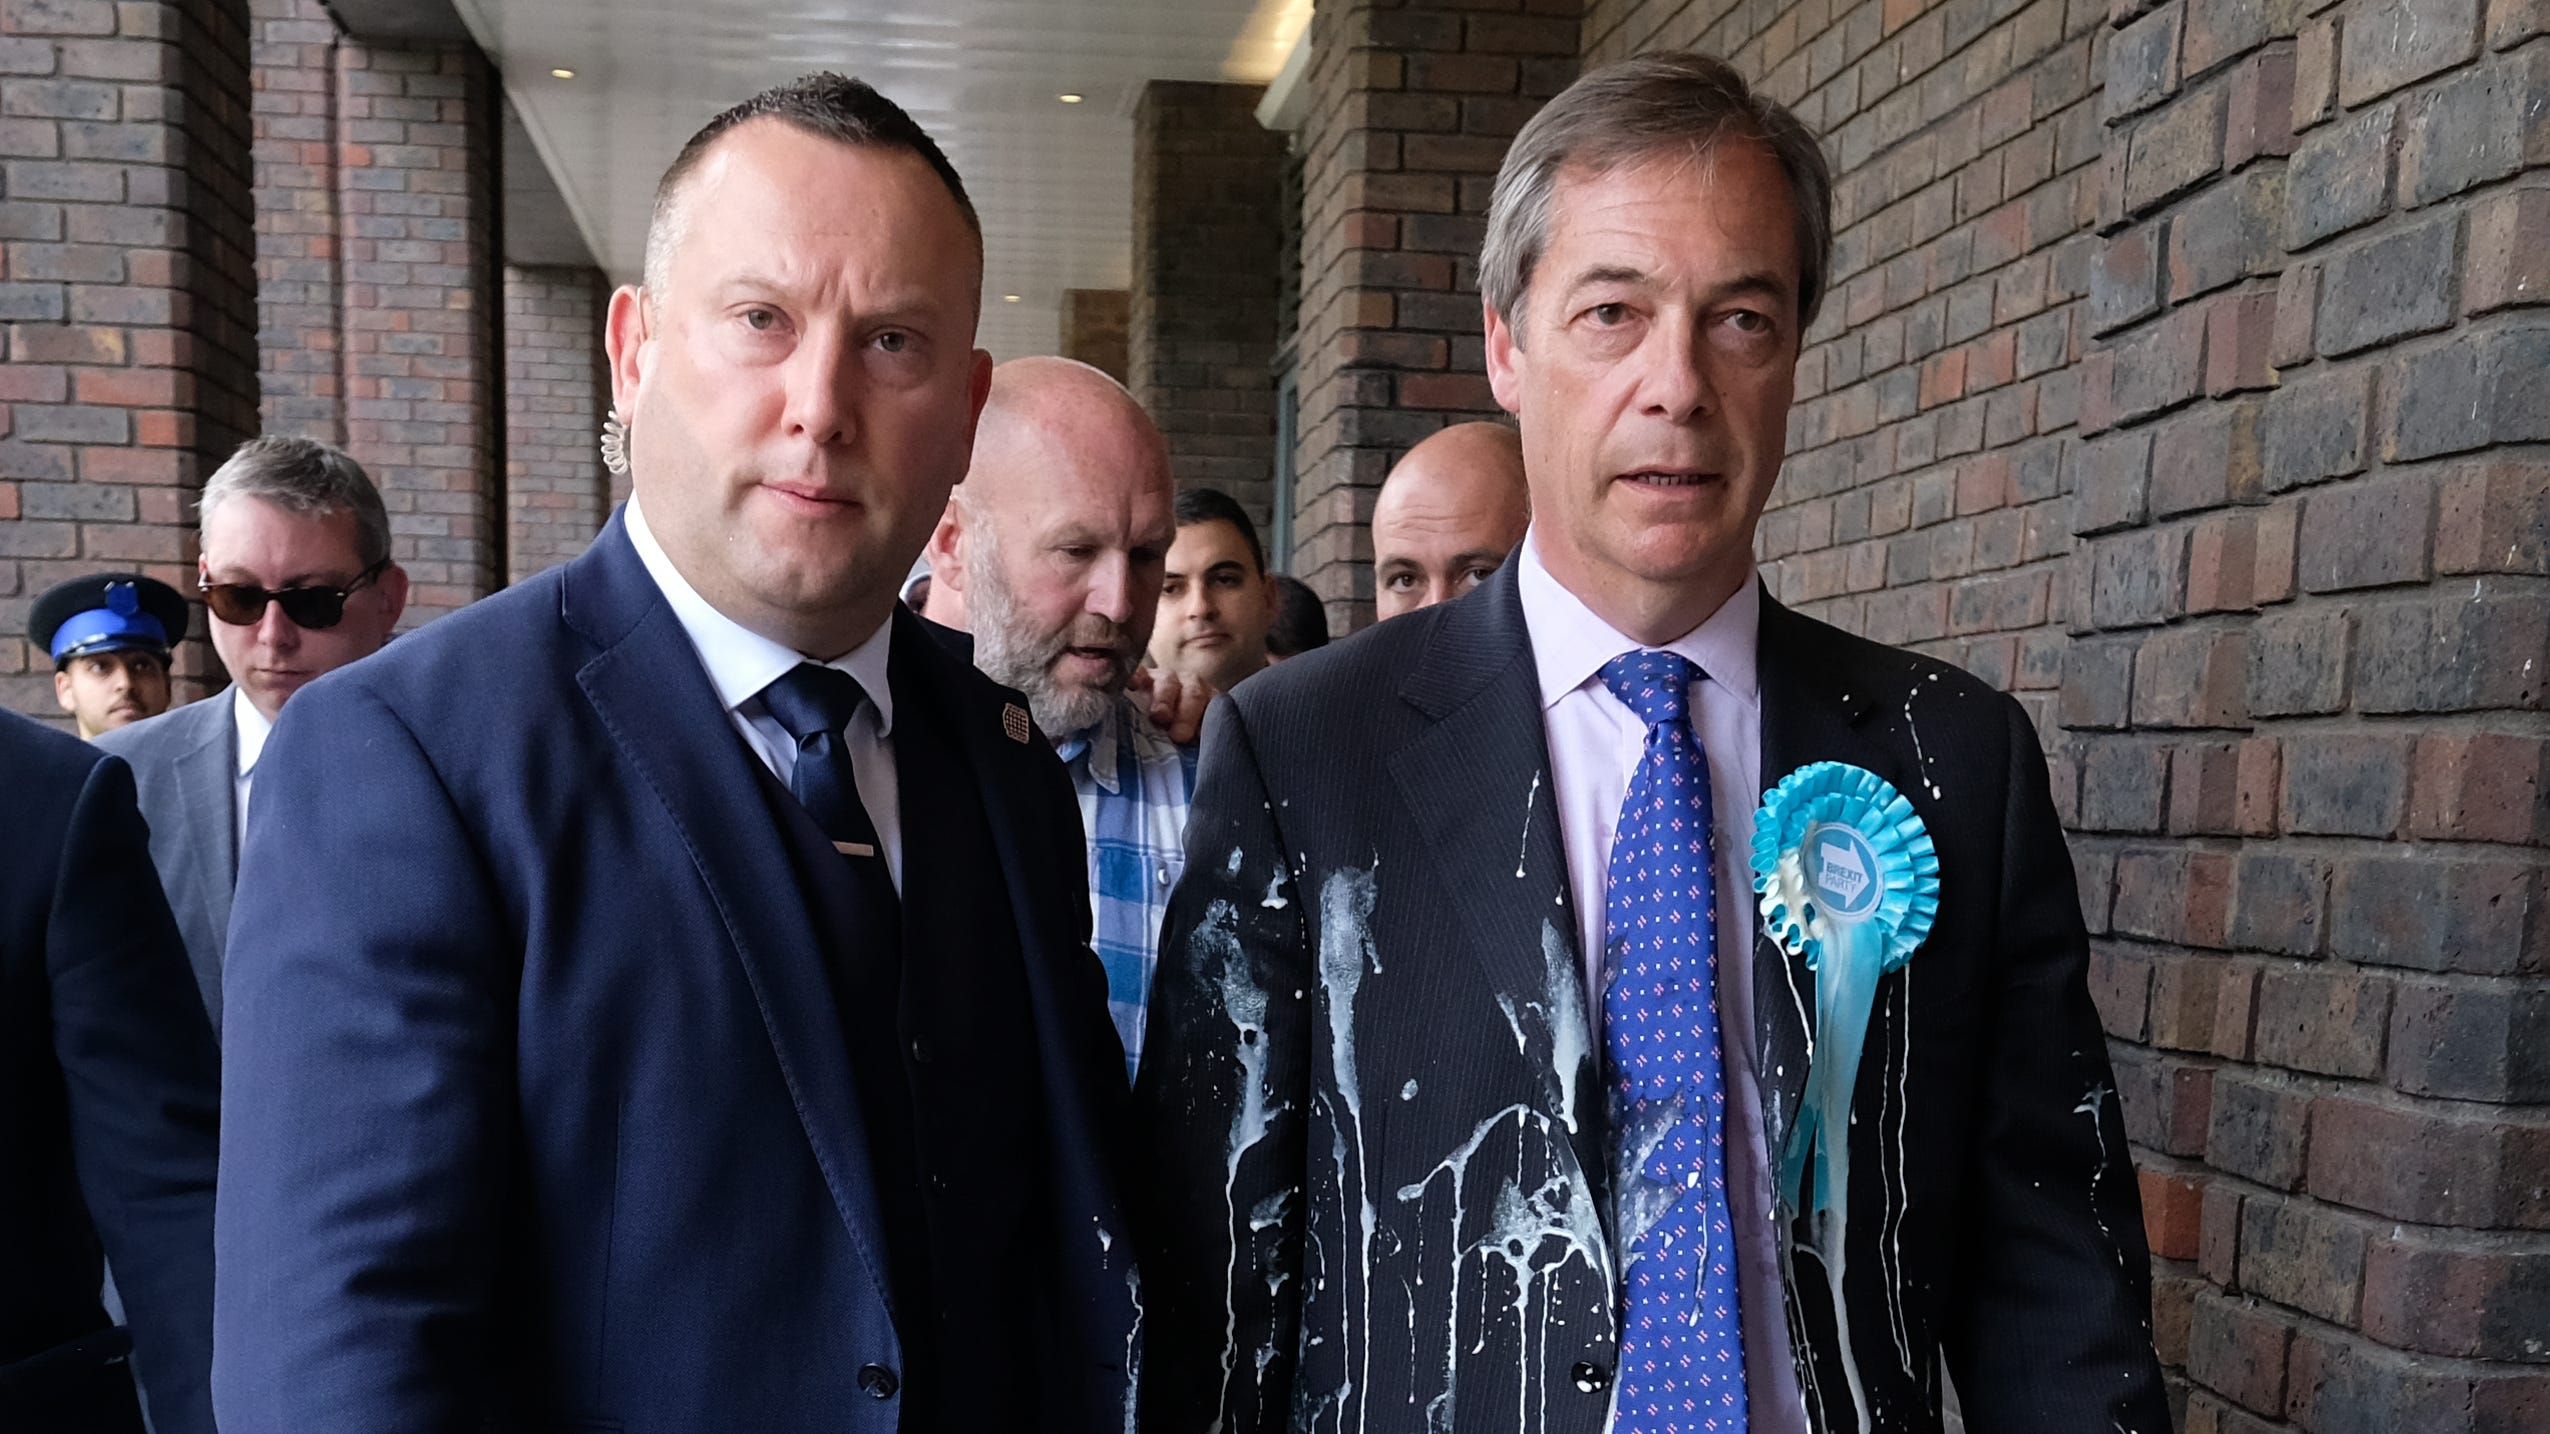 Brexit Party leader Nigel Farage, right, has what is thought to have been a milkshake thrown over him during a whistle stop tour on May 20, 2019 in Newcastle Upon Tyne, England.